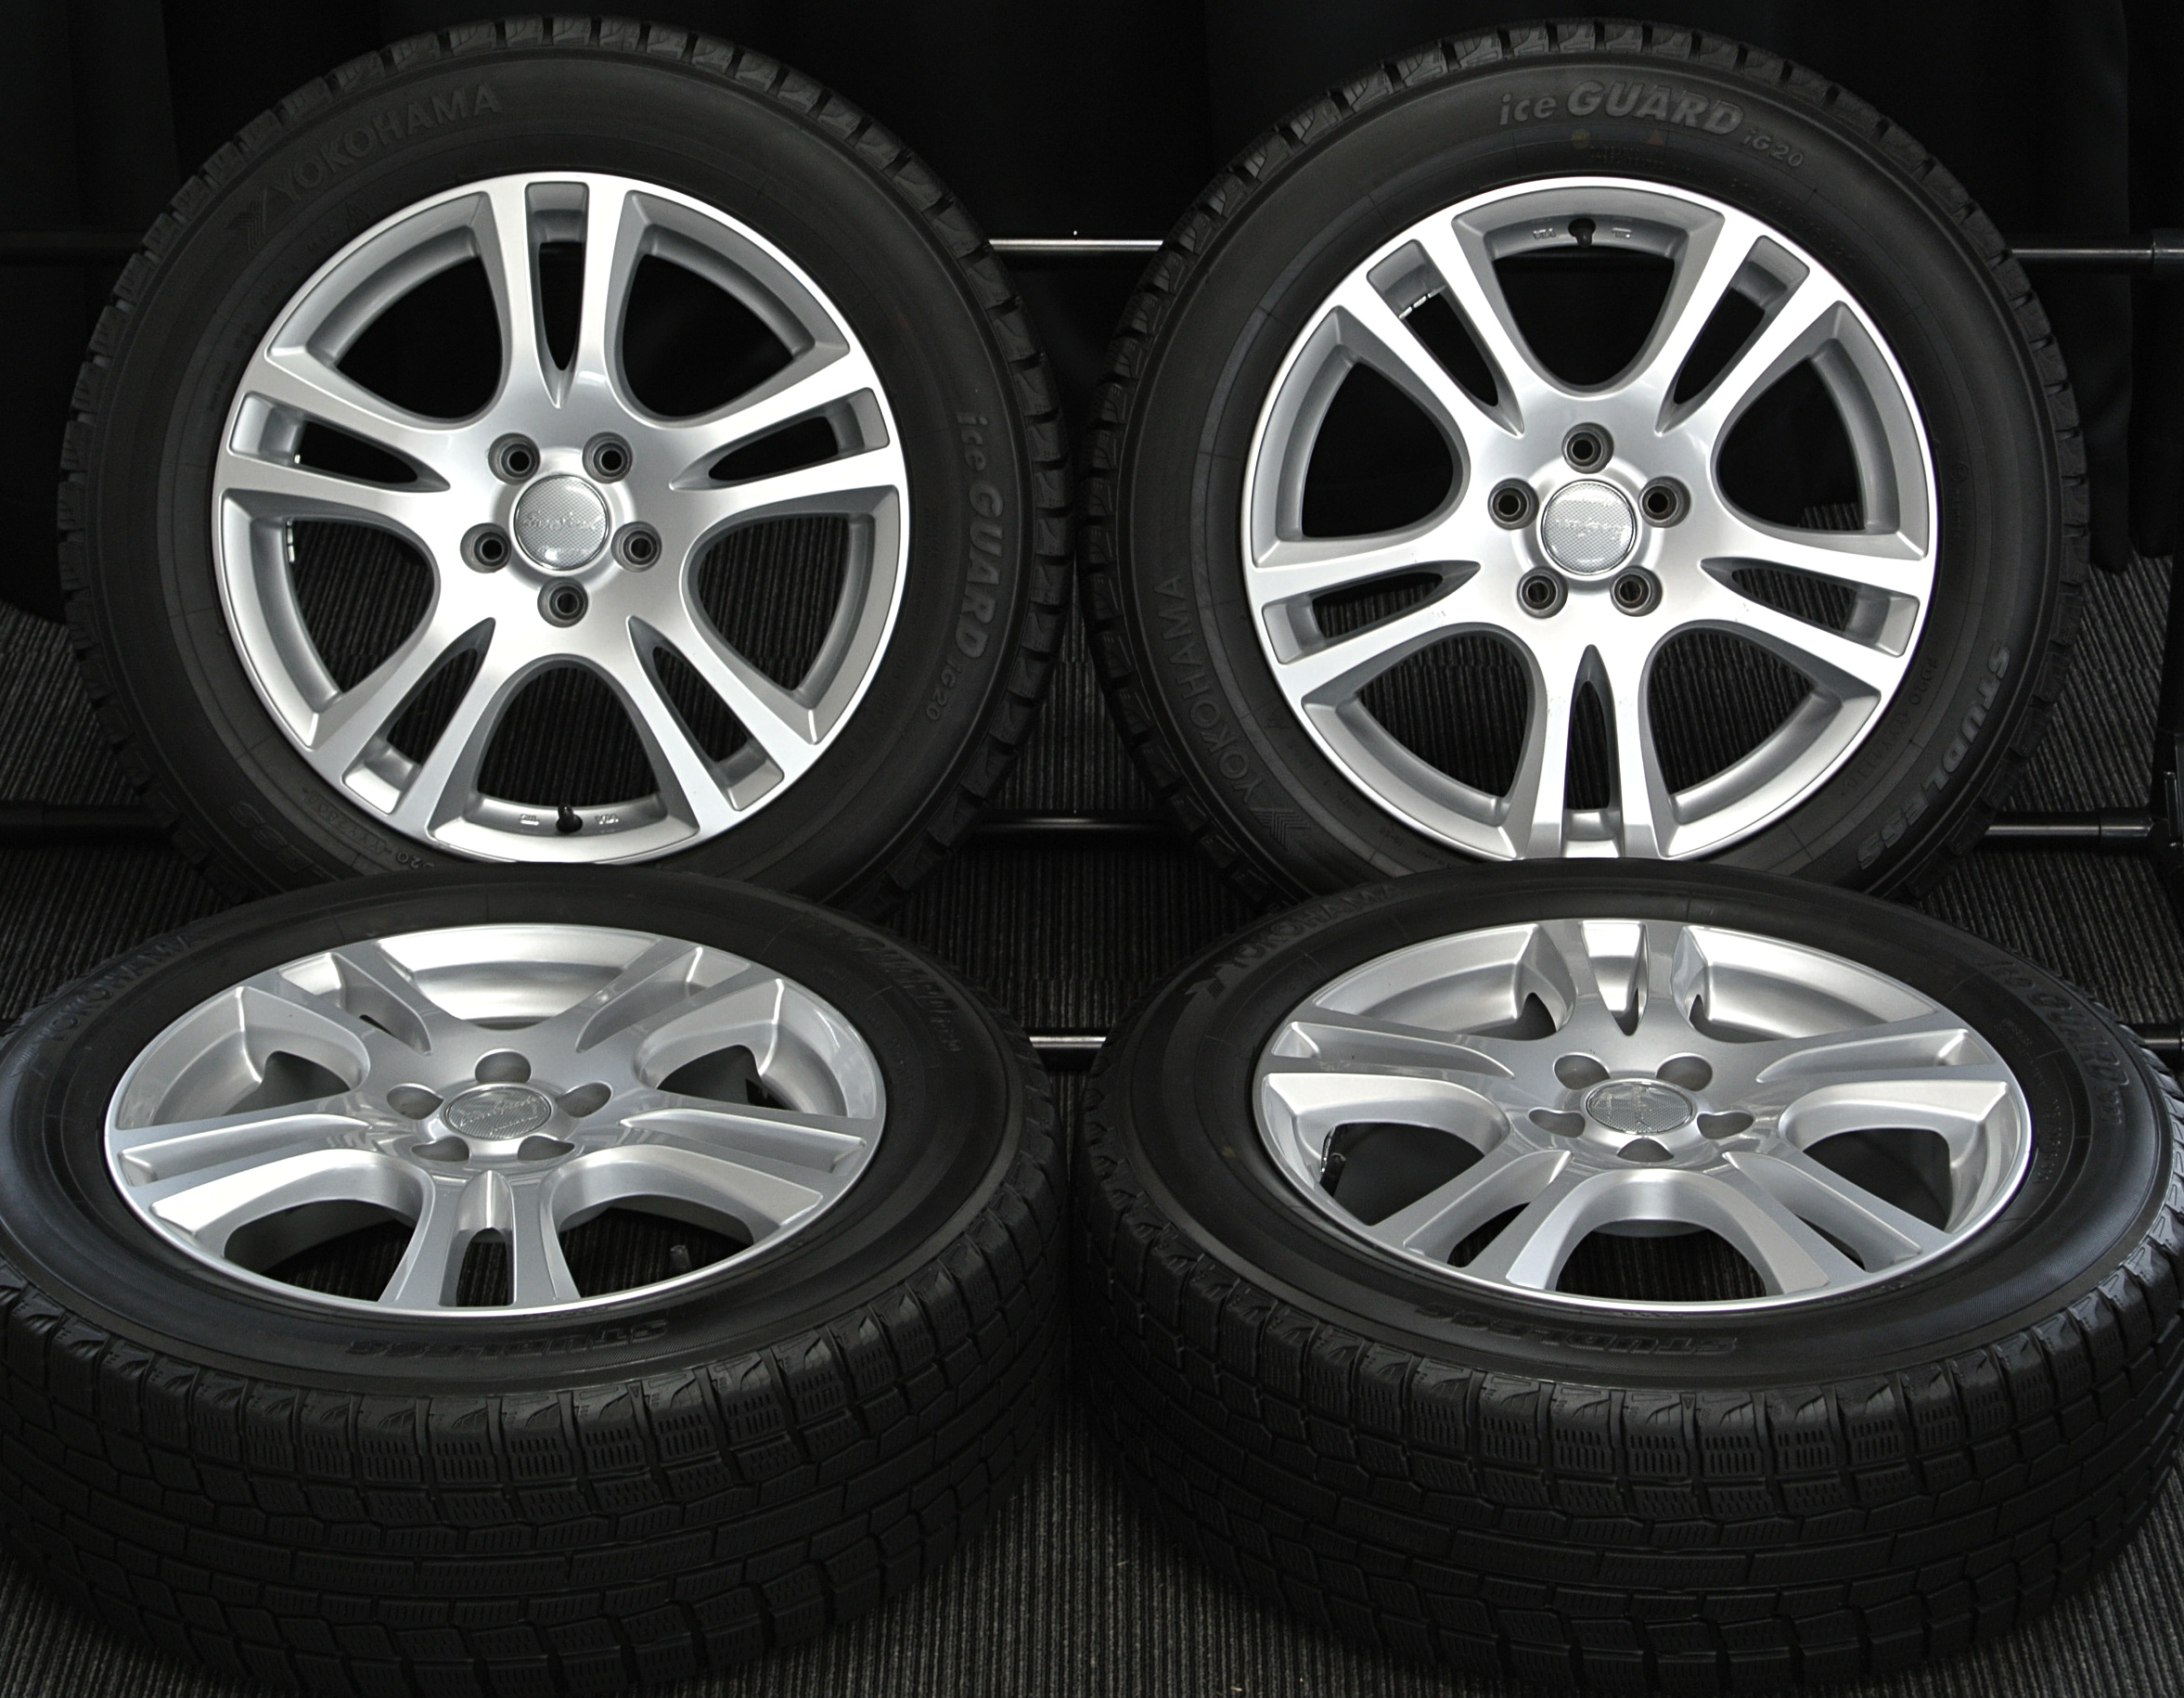 MANARAY SPORT EUROSPEED CX シルバー YOKOHAMA iceGUARD iG20 205/60R16 4本SET